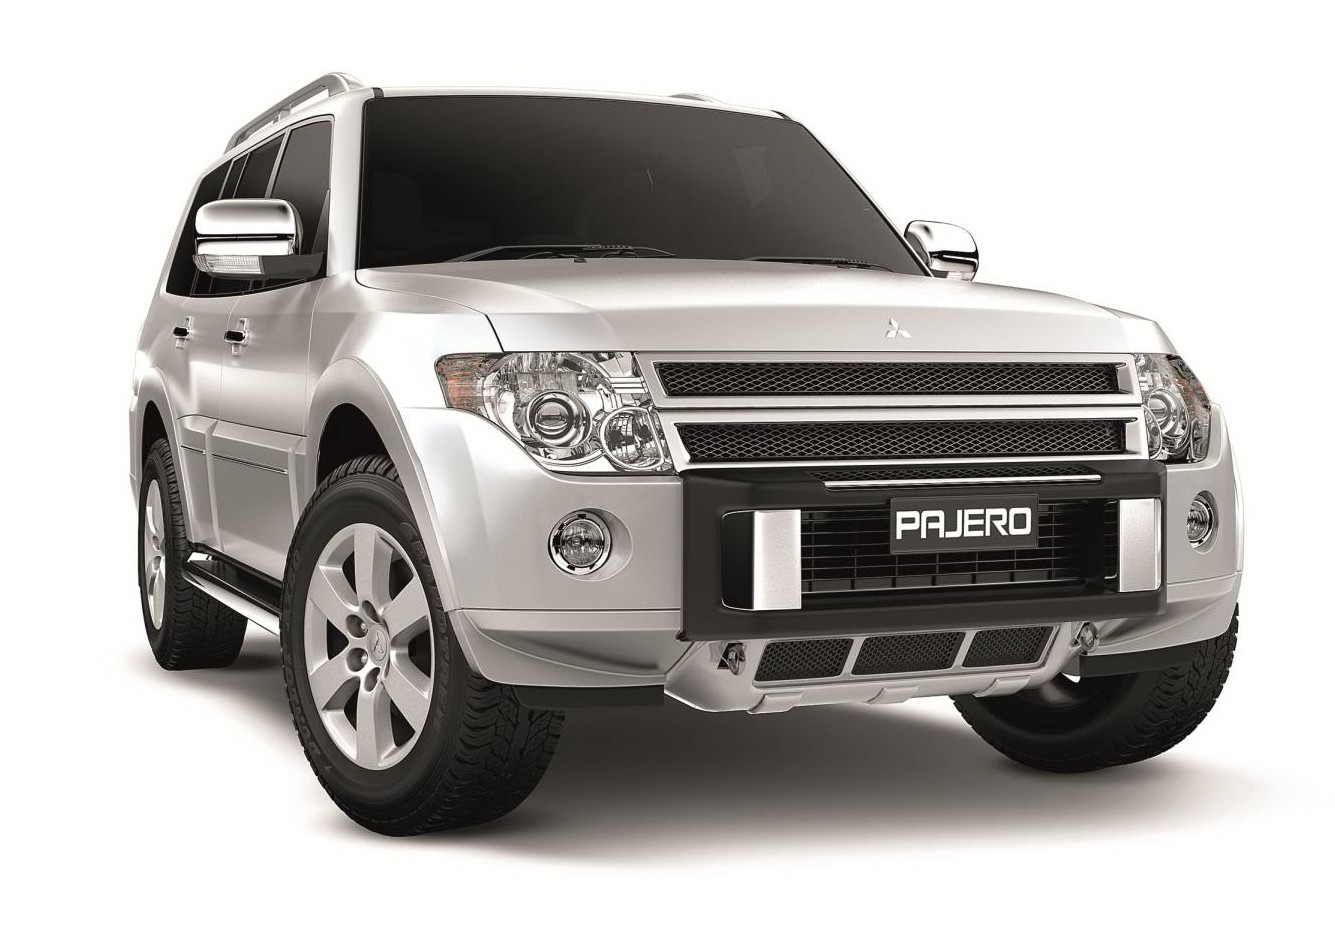 2011 Mitsubishi Pajero Rx On Sale In Australia Photos 1